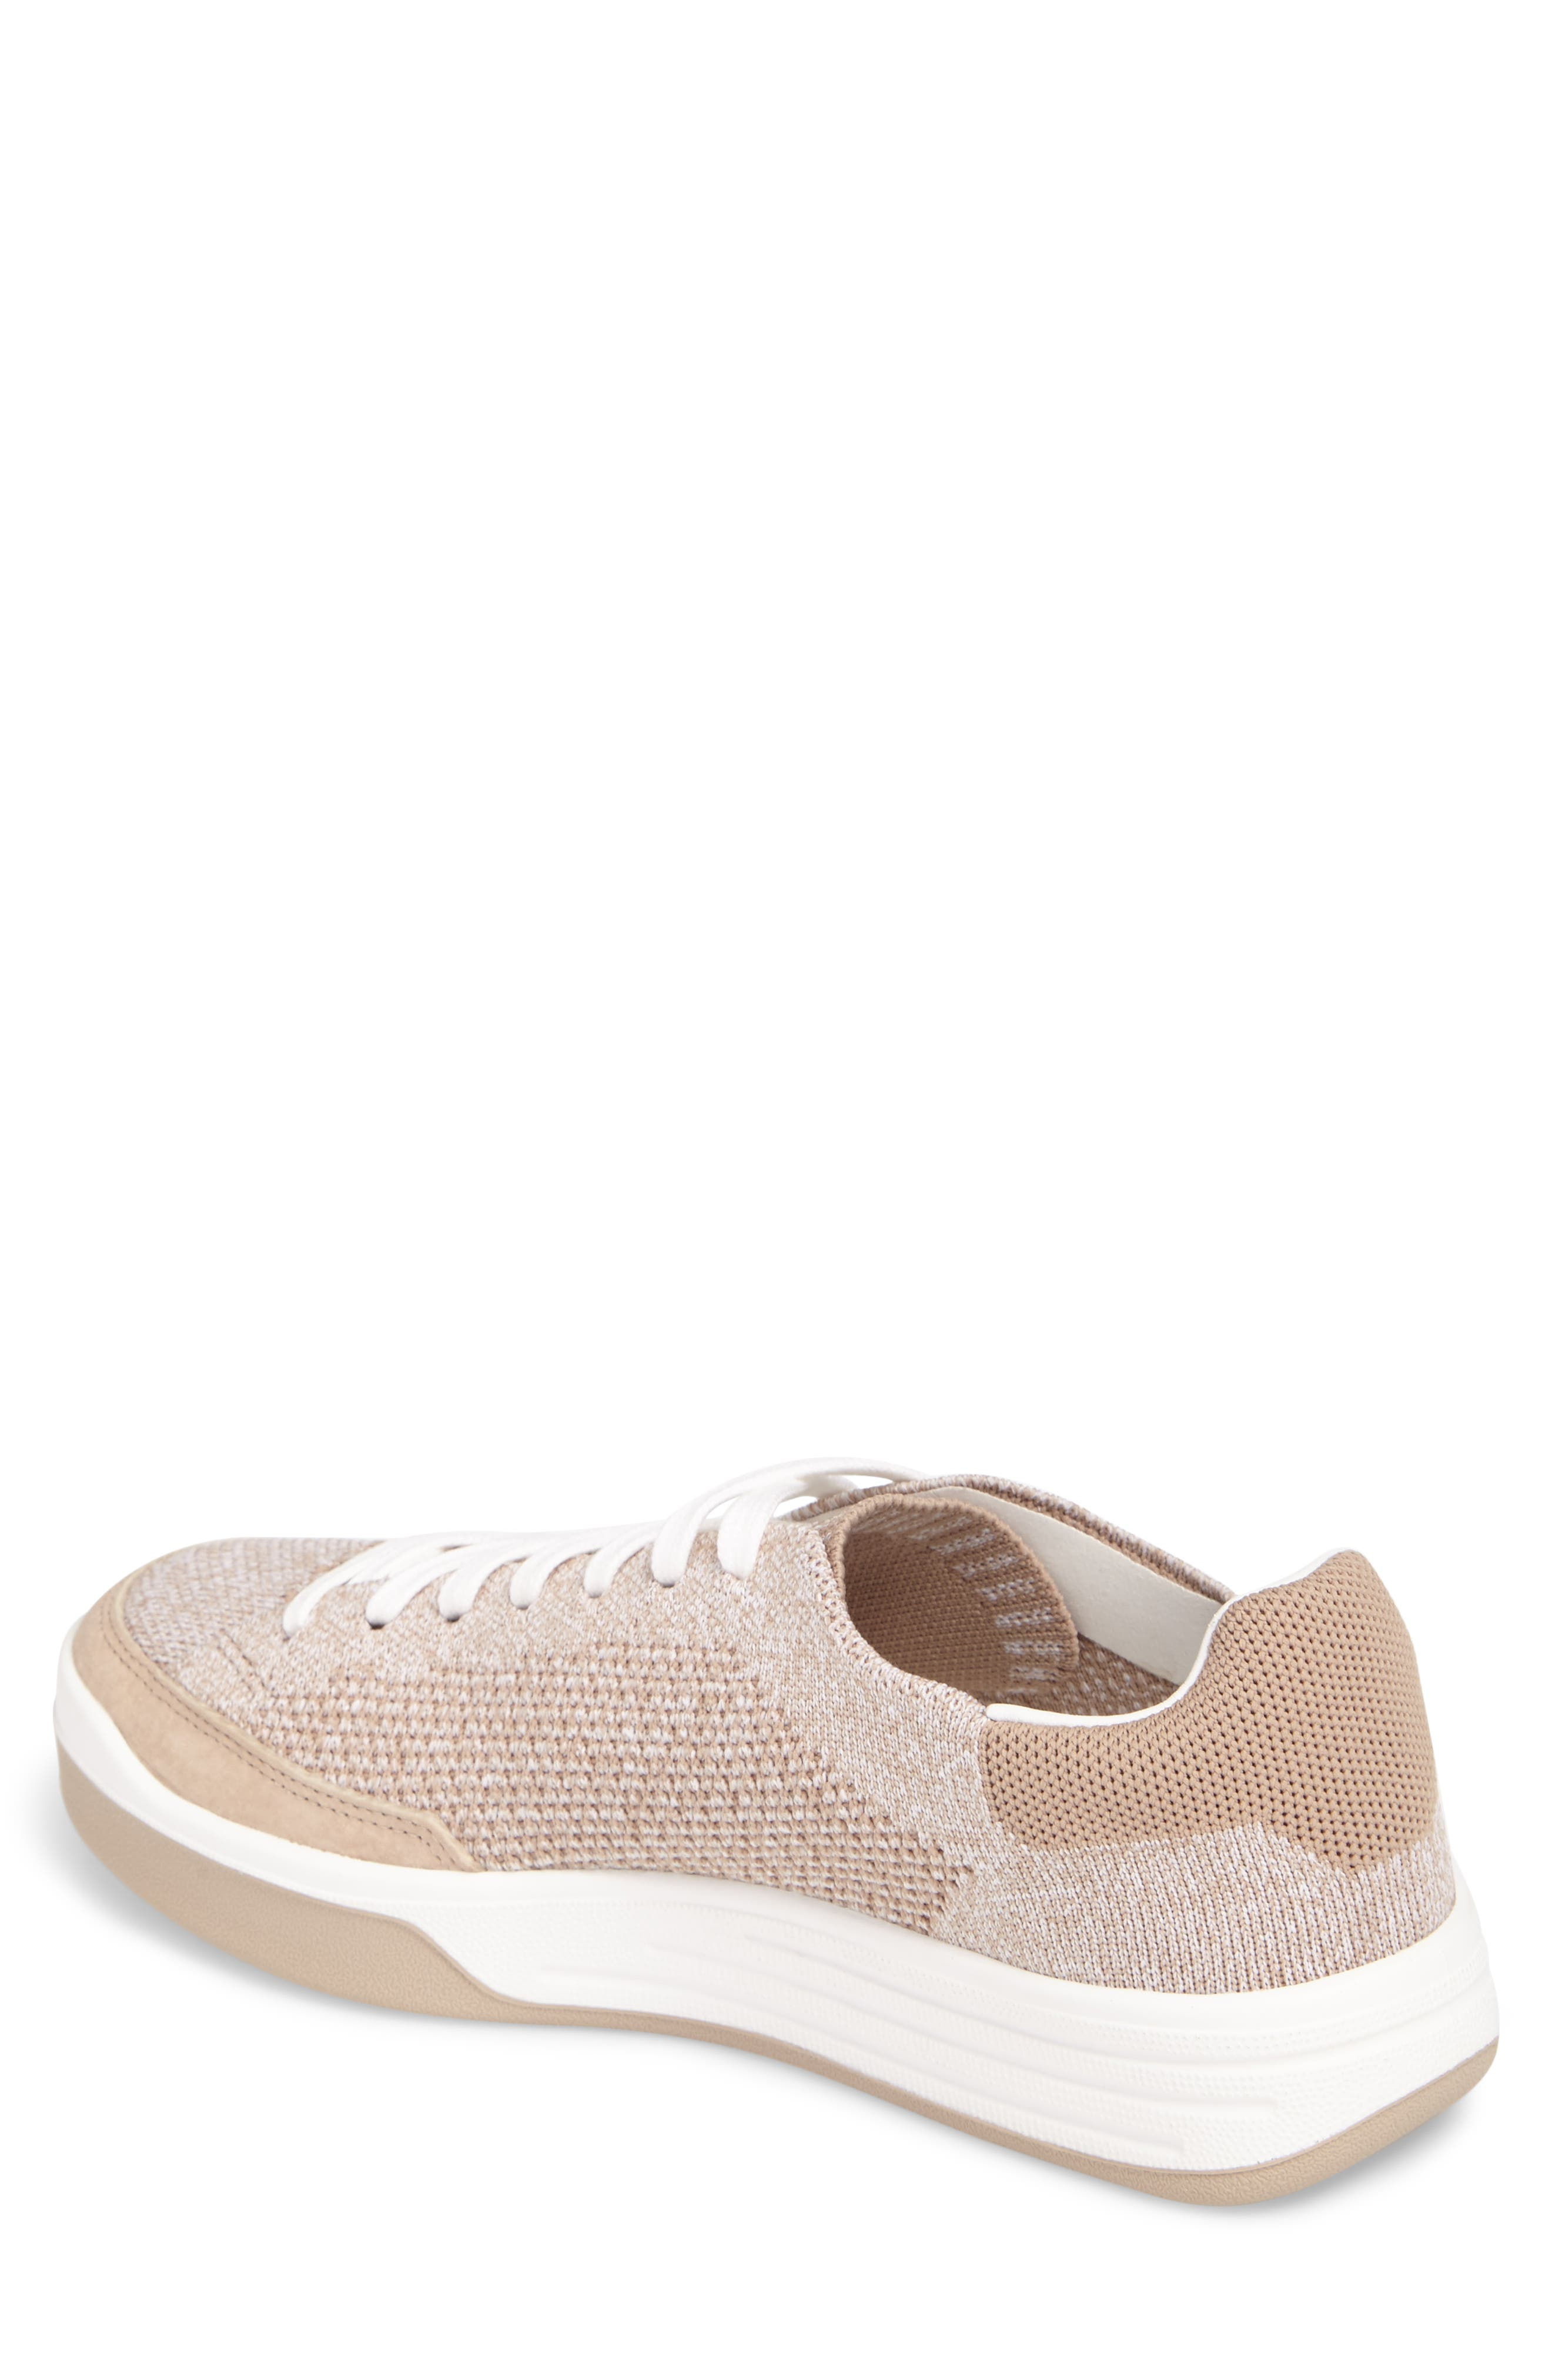 Rod Laver Super Primeknit Sneaker,                             Alternate thumbnail 2, color,                             Khaki/ White/ Crystal White